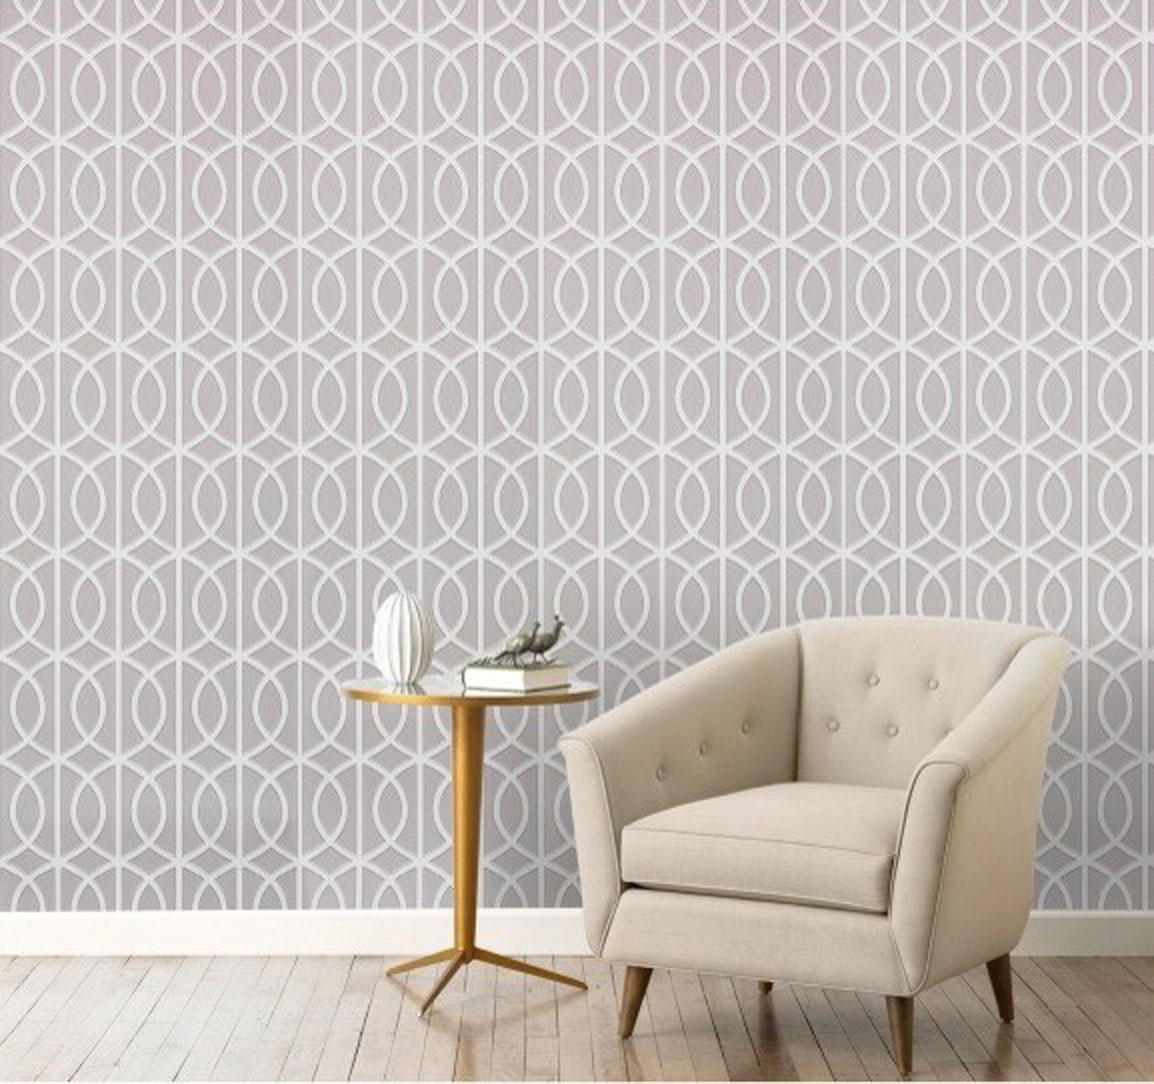 Geometric and Graphic Wallpaper Home Trends Girls Of TO